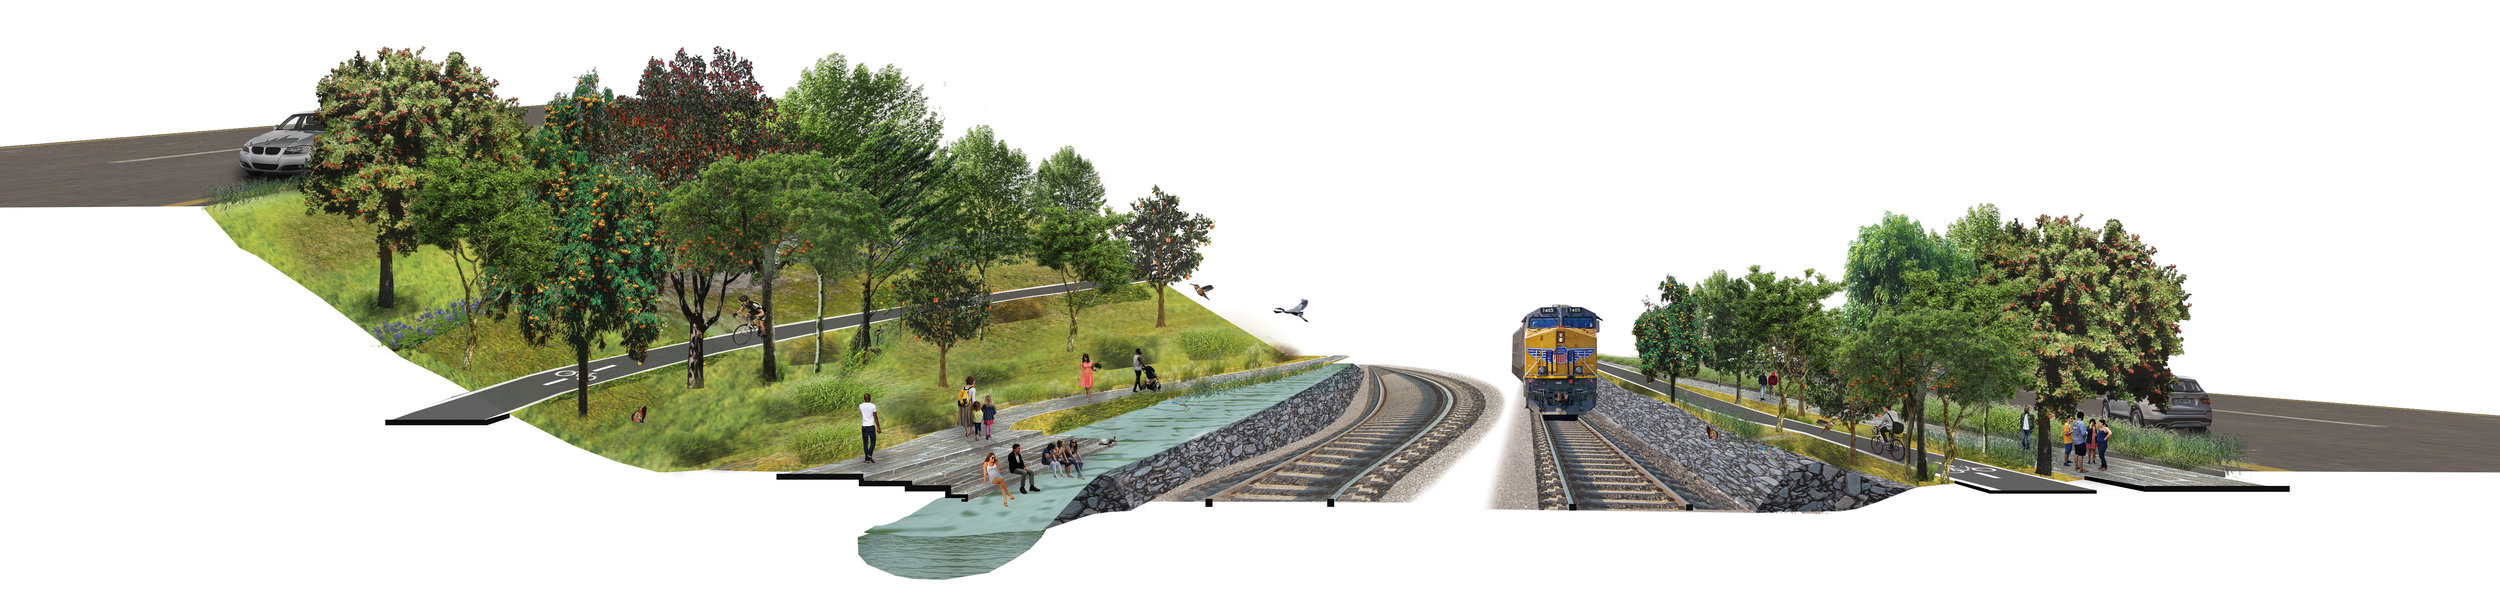 Hydrodynamic Section Perspective at Railyard